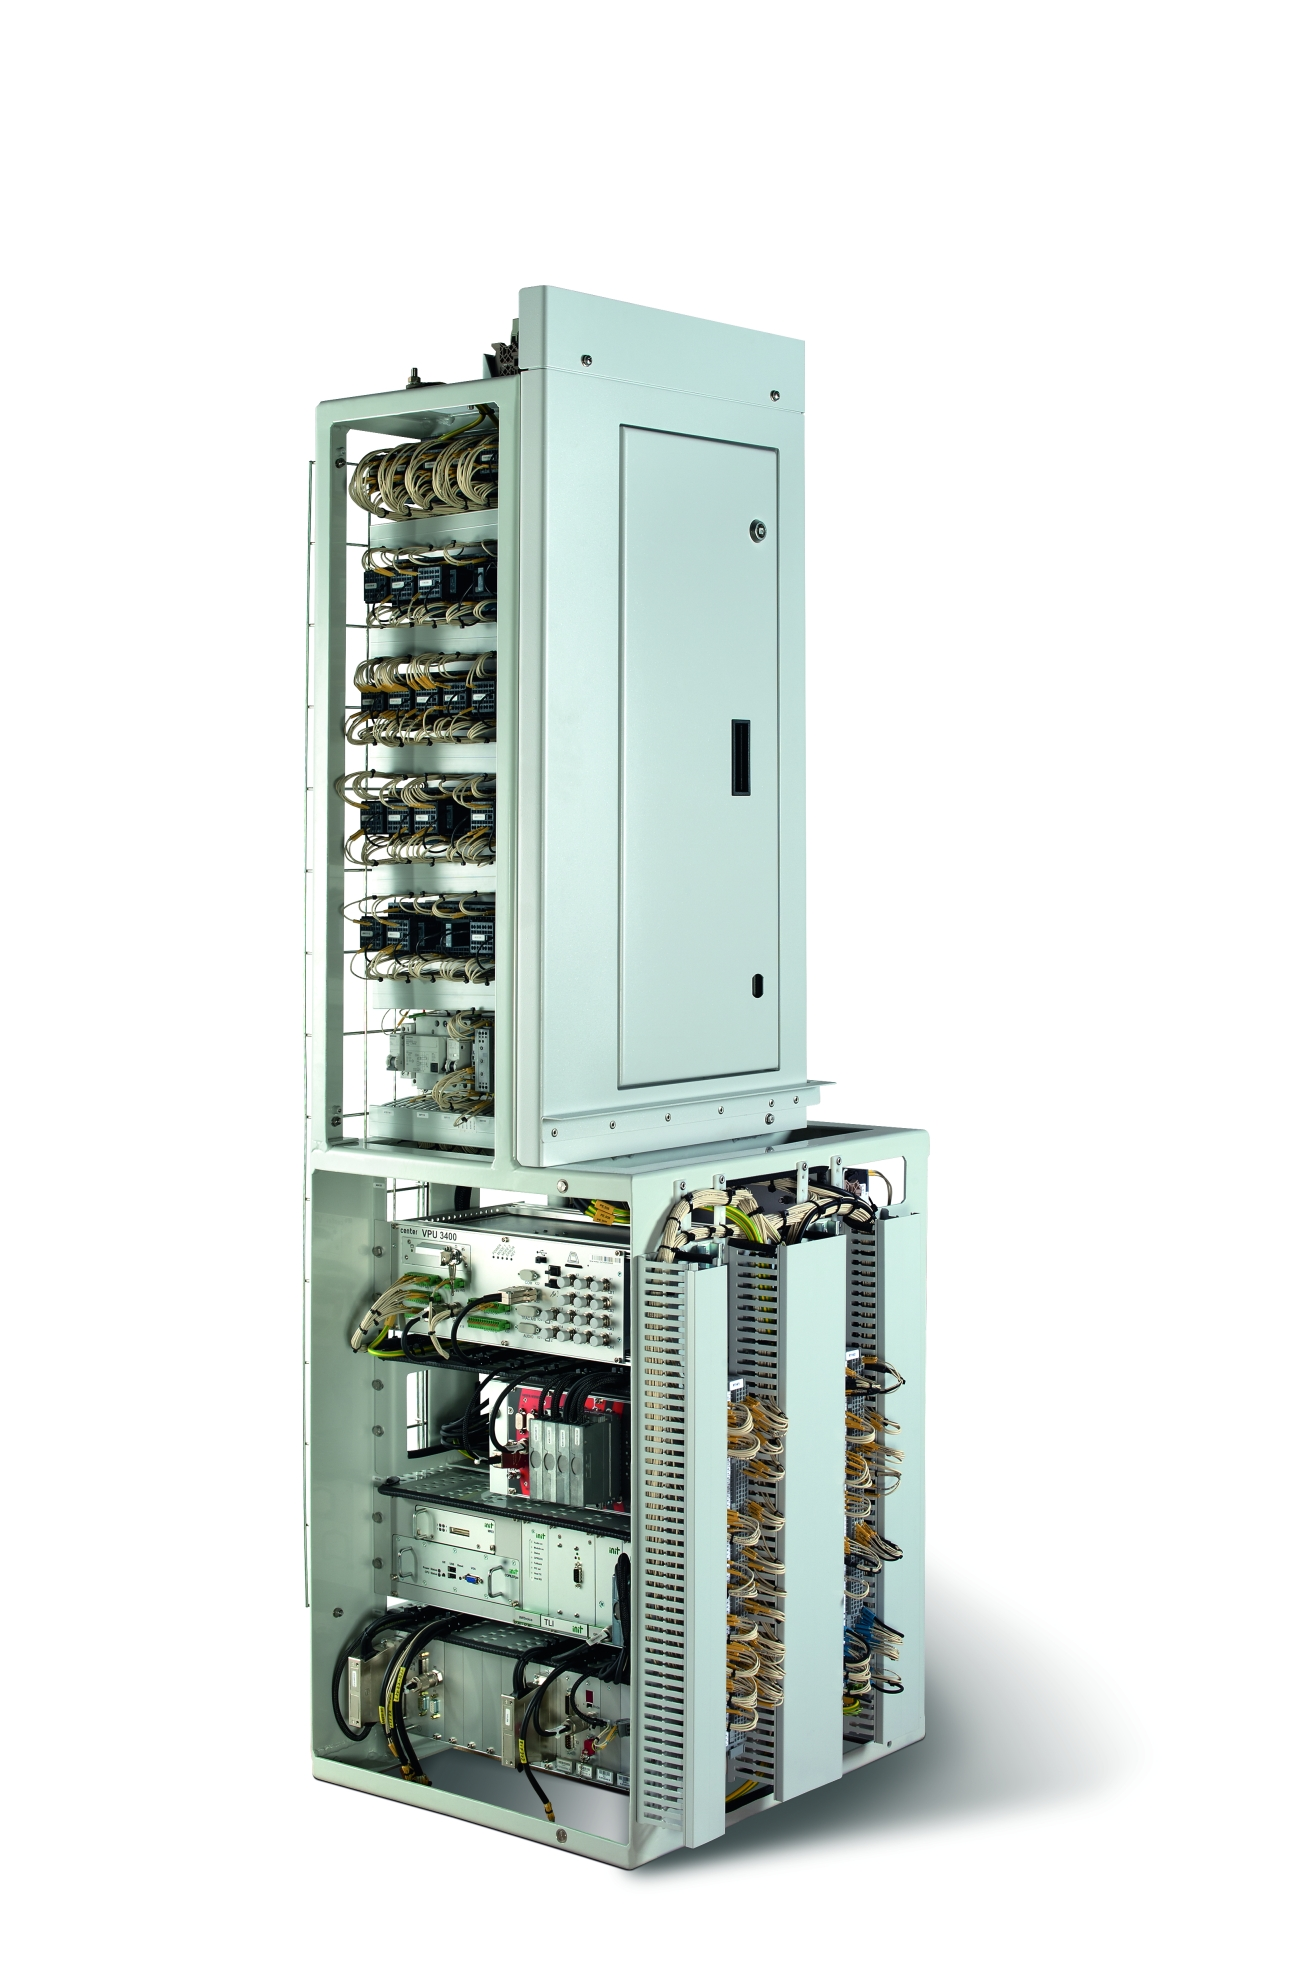 Switch cabinet for a vehicle control system